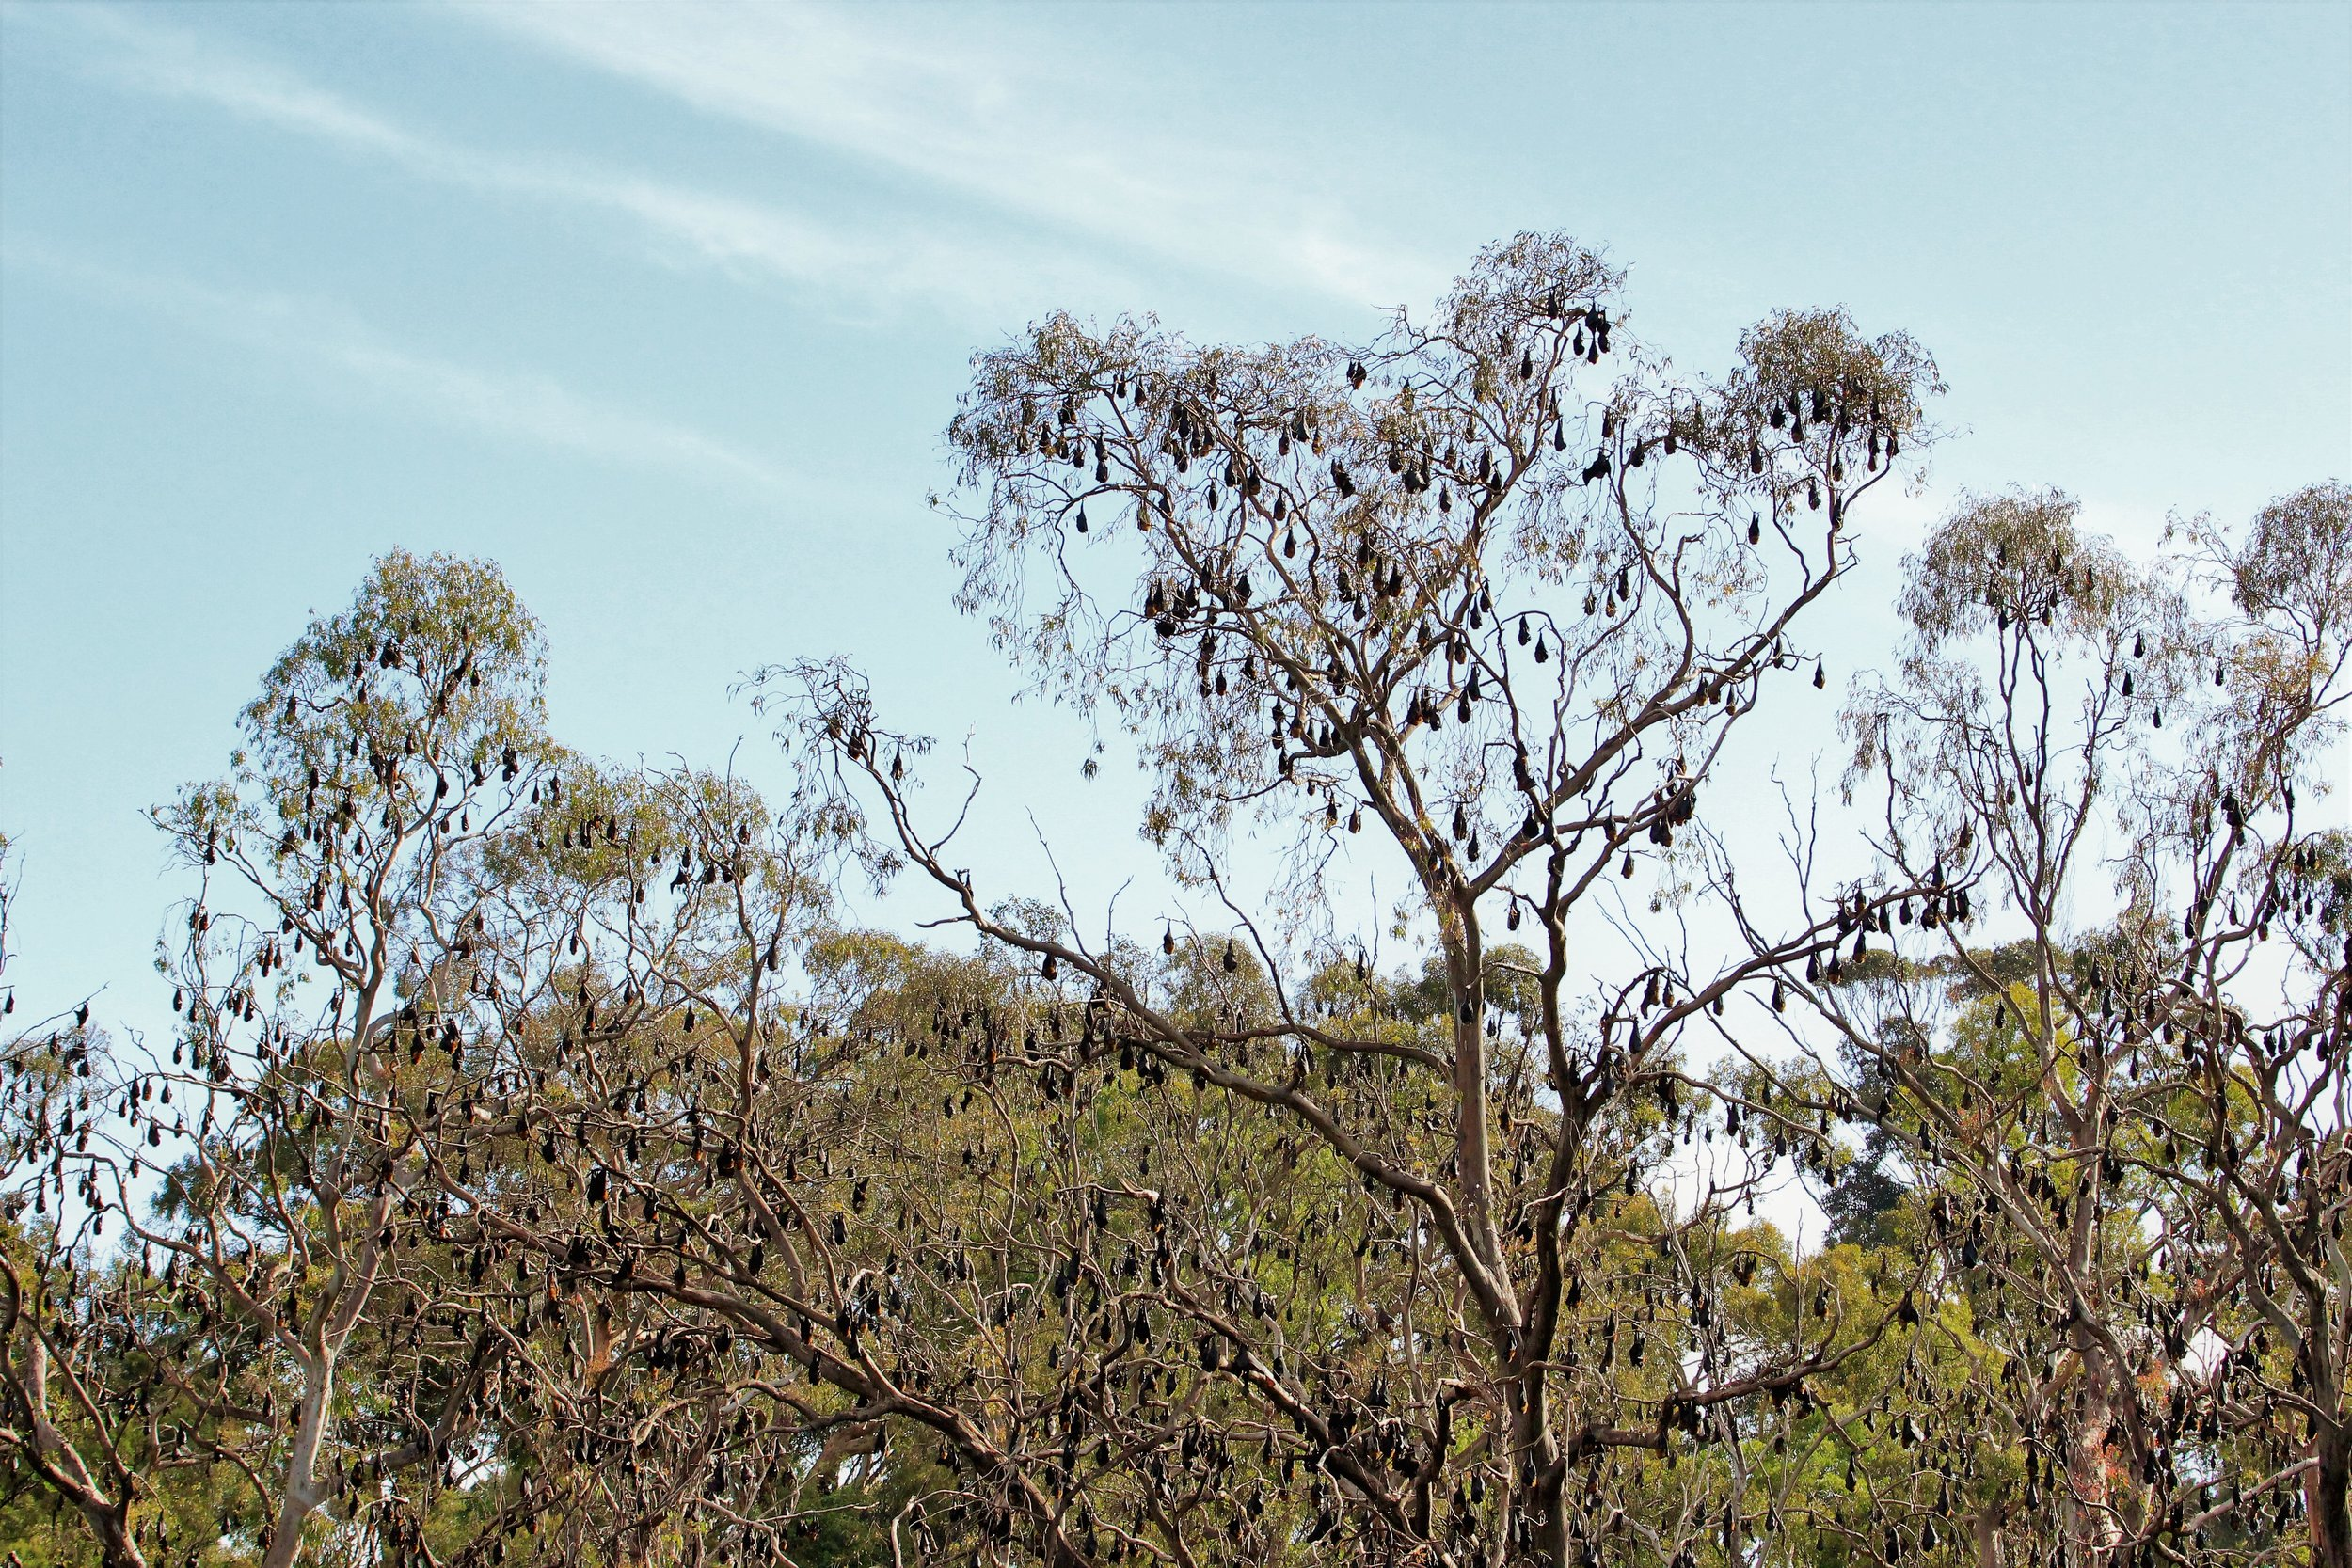 17-12-2017 Fairfield - flying foxes on the Yarra from the kayak 10.JPG